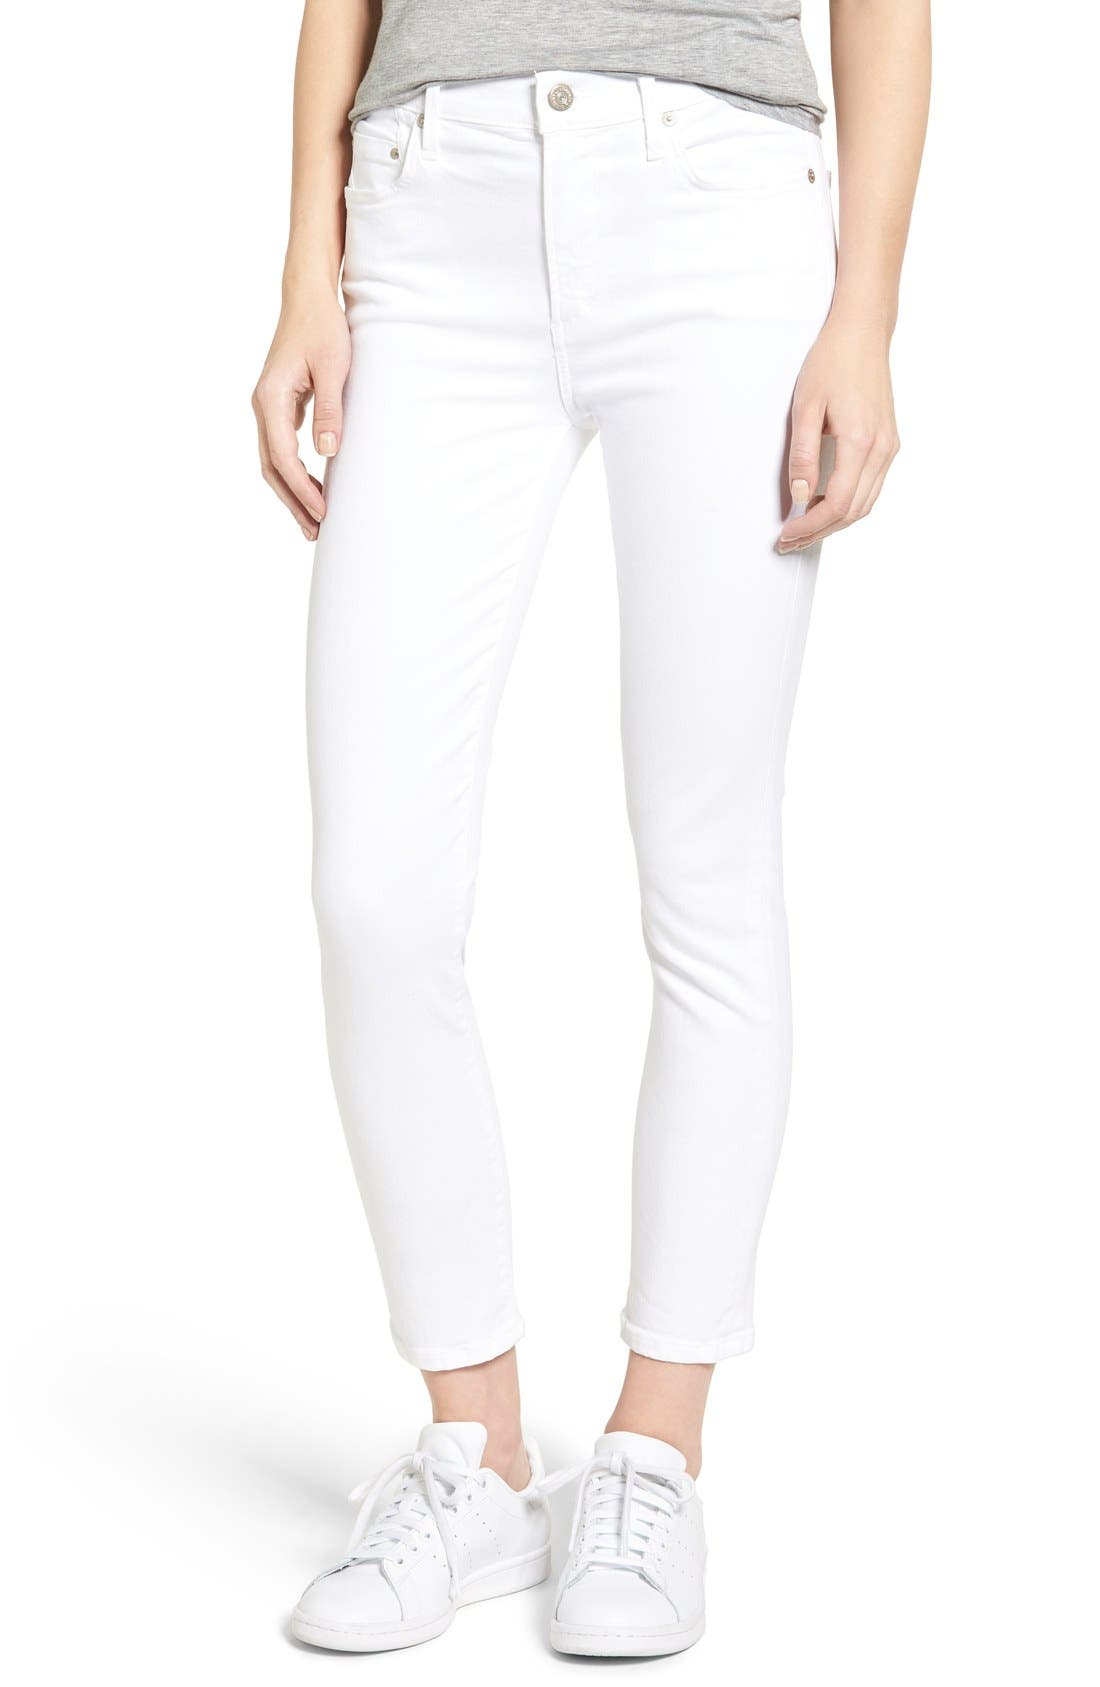 Main Image - Citizens of Humanity Rocket High Waist Crop Skinny Jeans (Sculpt White)